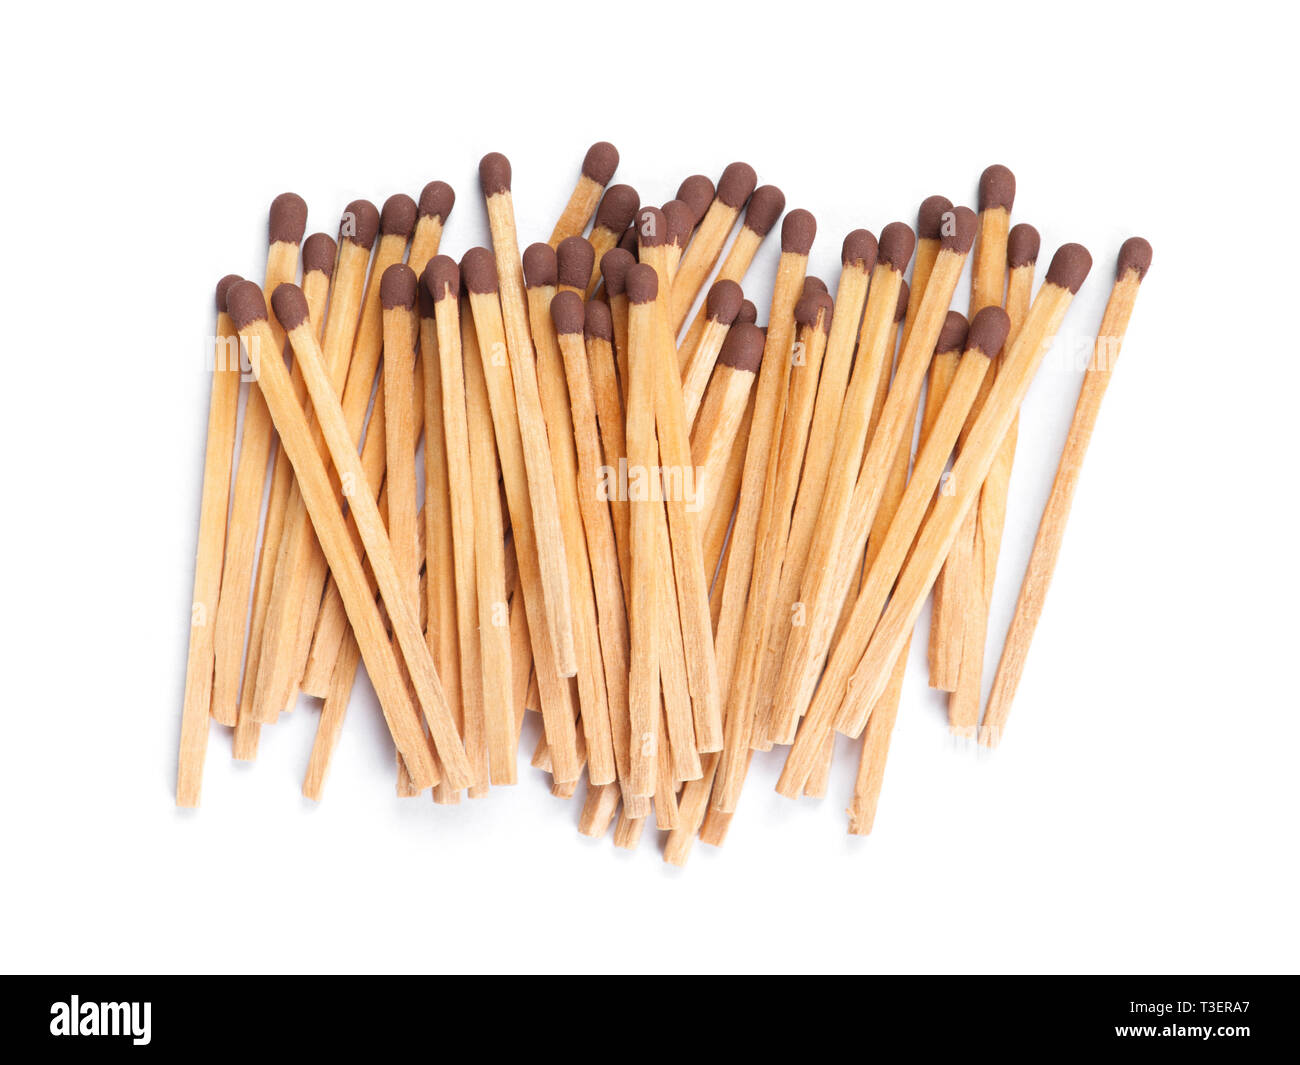 Bunch of matches isolated on white background - Stock Image